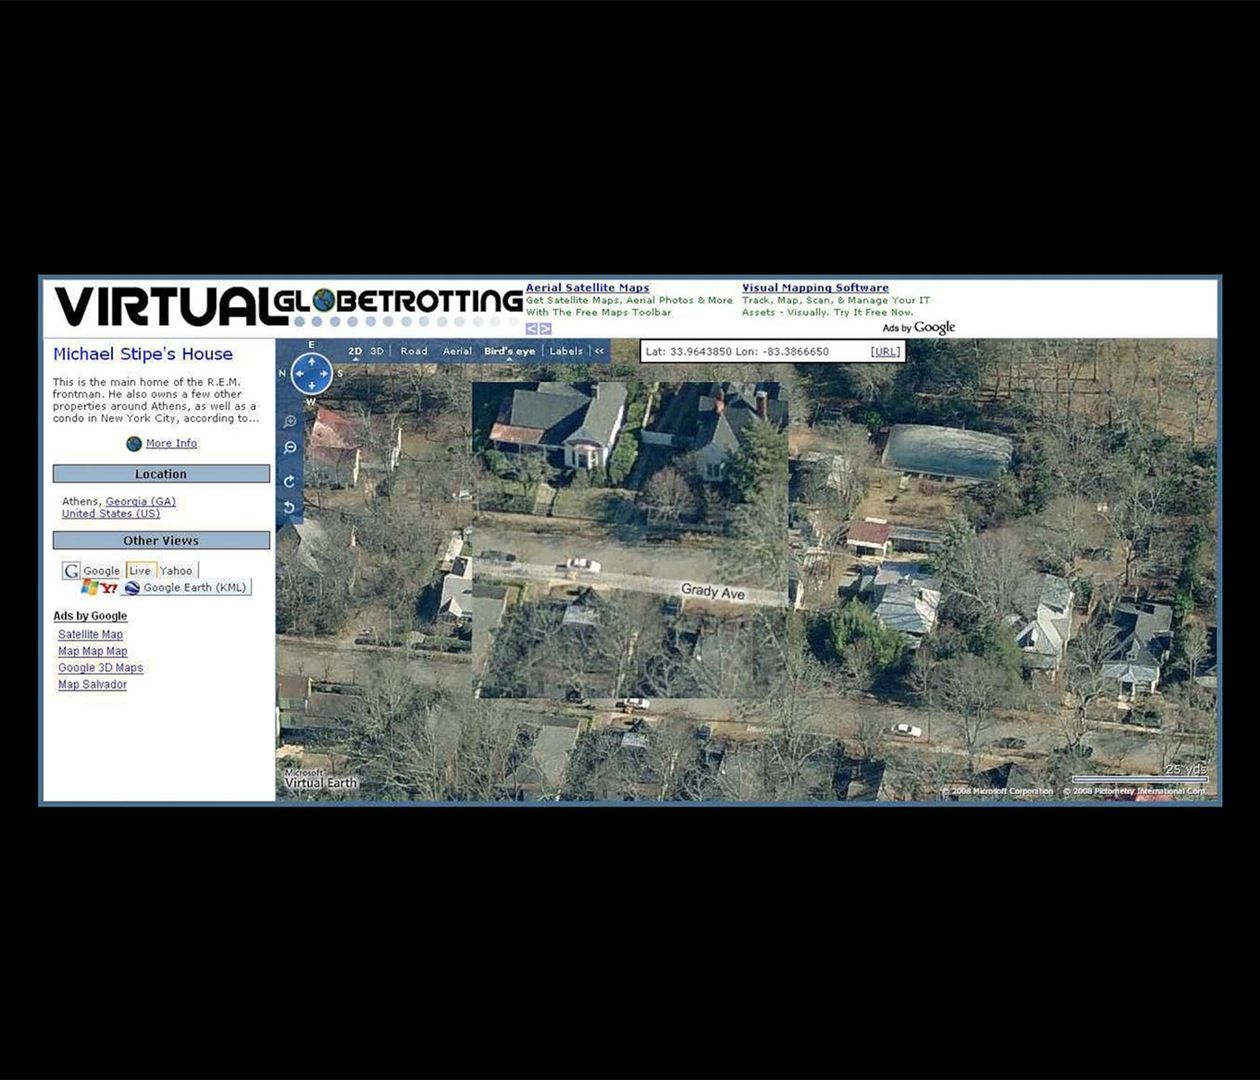 Jon Horvath - Stalking Michael Stipe: Another Prop to Occupy My Time on ibm earth maps, bing earth maps, nasa earth maps, google earth maps,